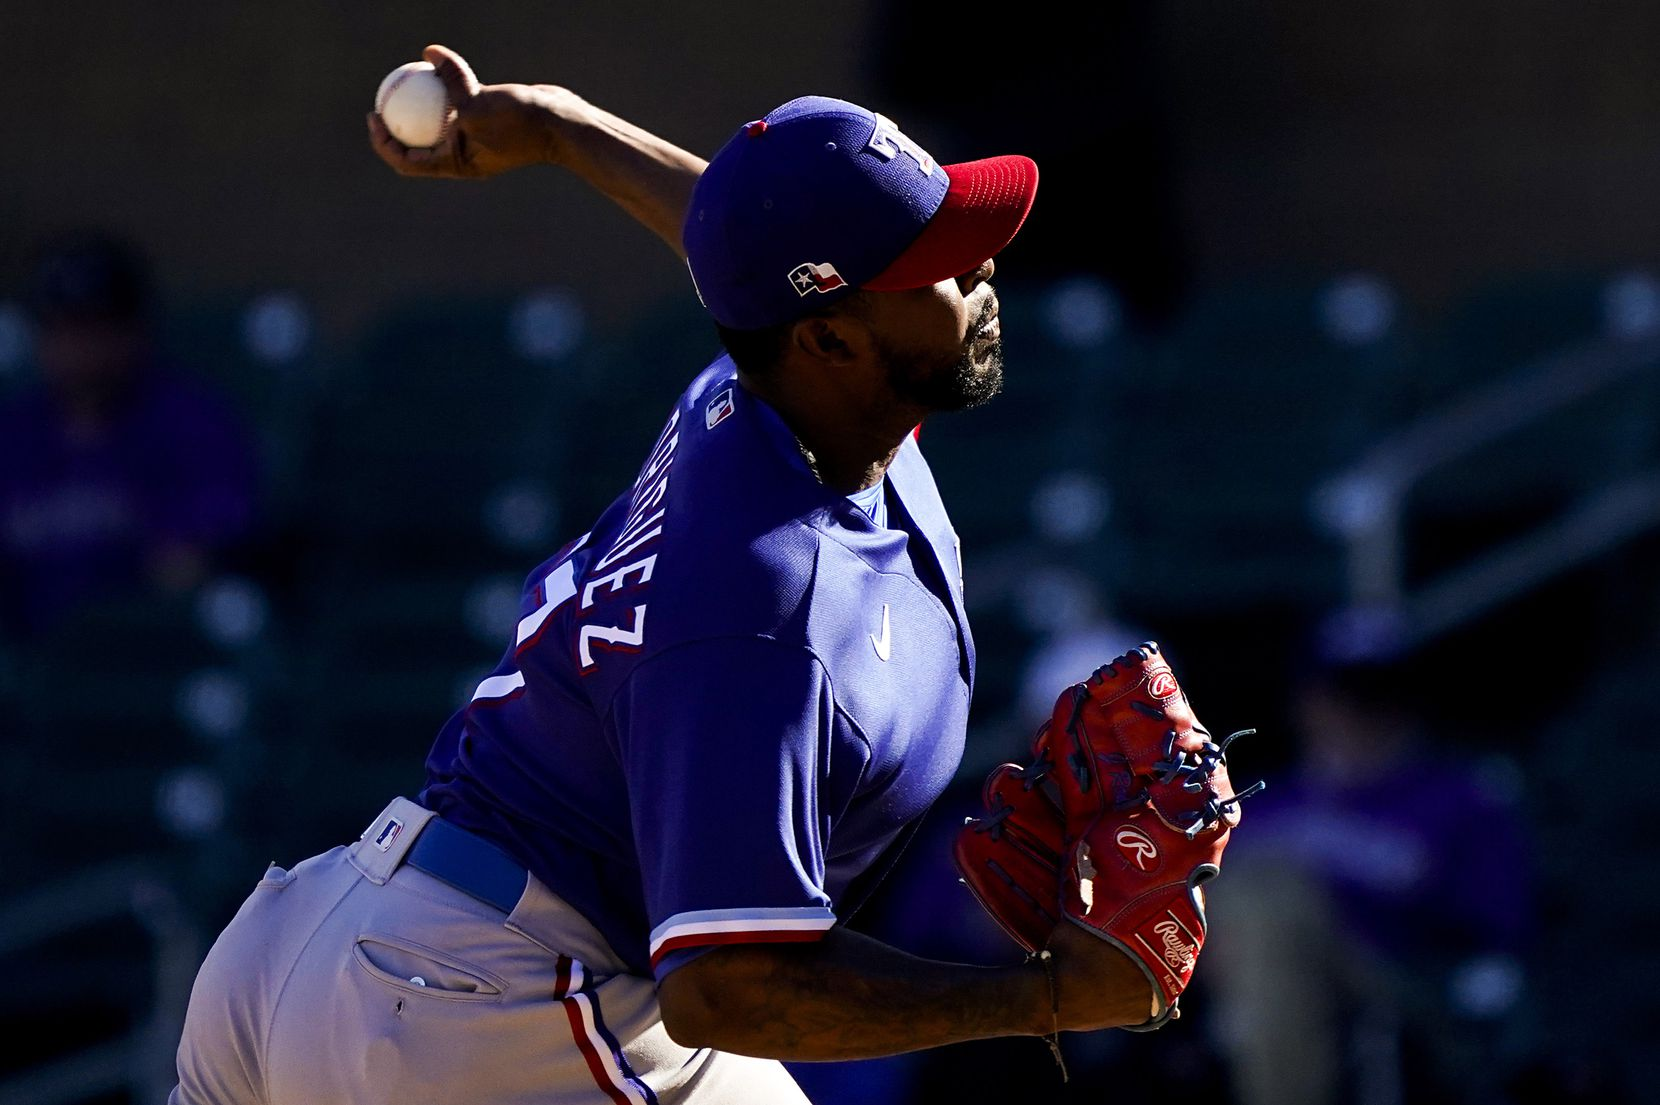 Texas Rangers pitcher Joely Rodriguez pitches during the seventh inning of a spring training game against the Colorado Rockies at Salt River Fields at Talking Stick on Wednesday, Feb. 26, 2020, in Scottsdale, Ariz.